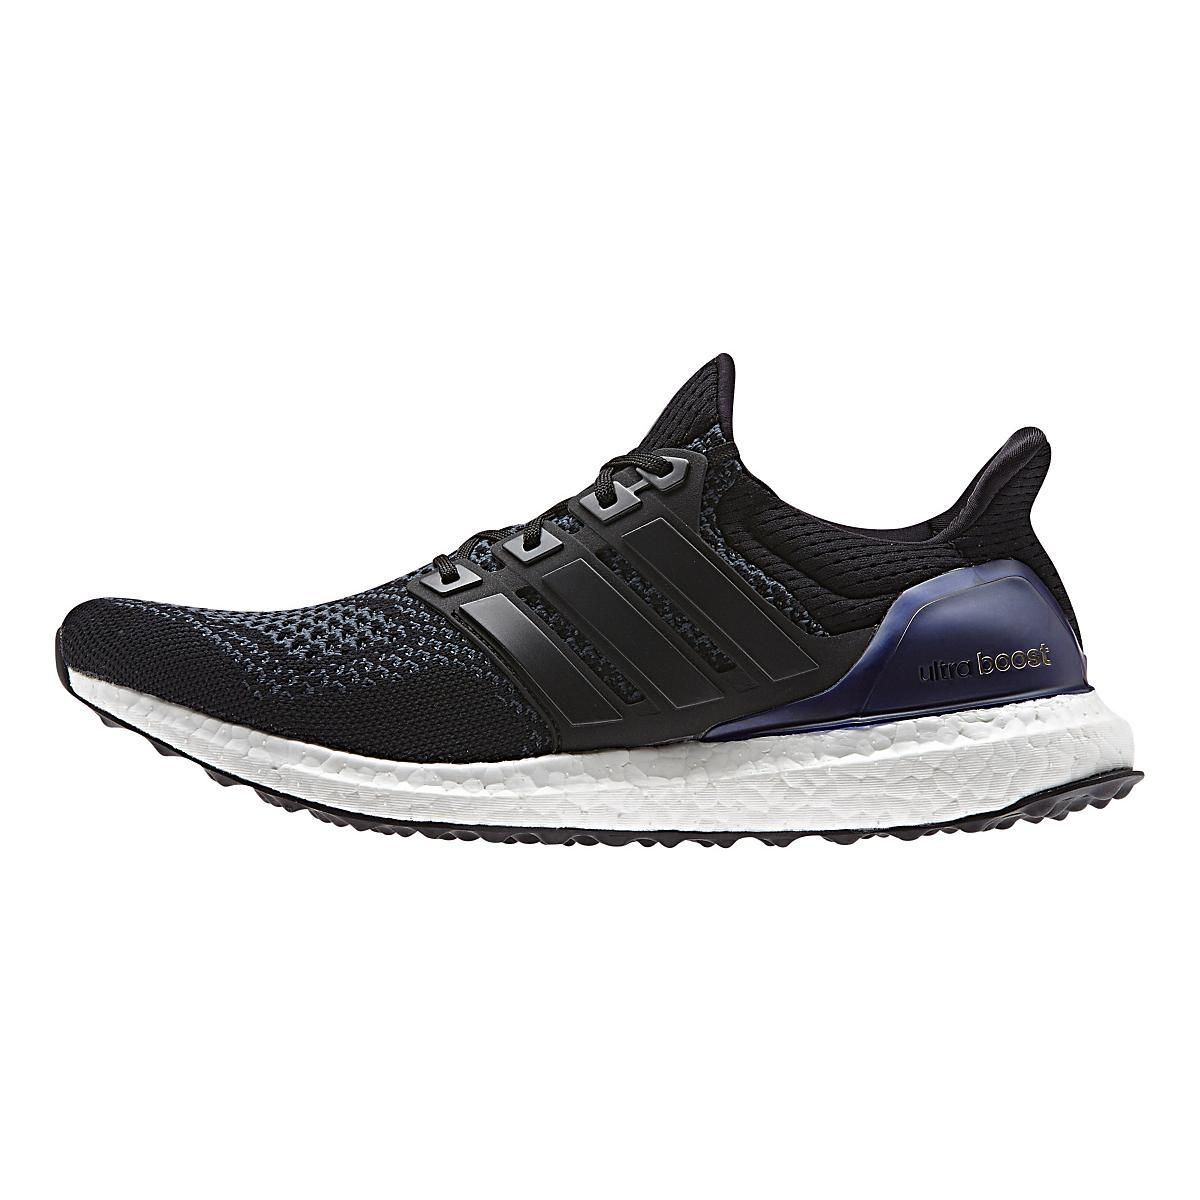 d89b2341b49c45 Feel energized on every step with the Mens adidas Ultra Boost